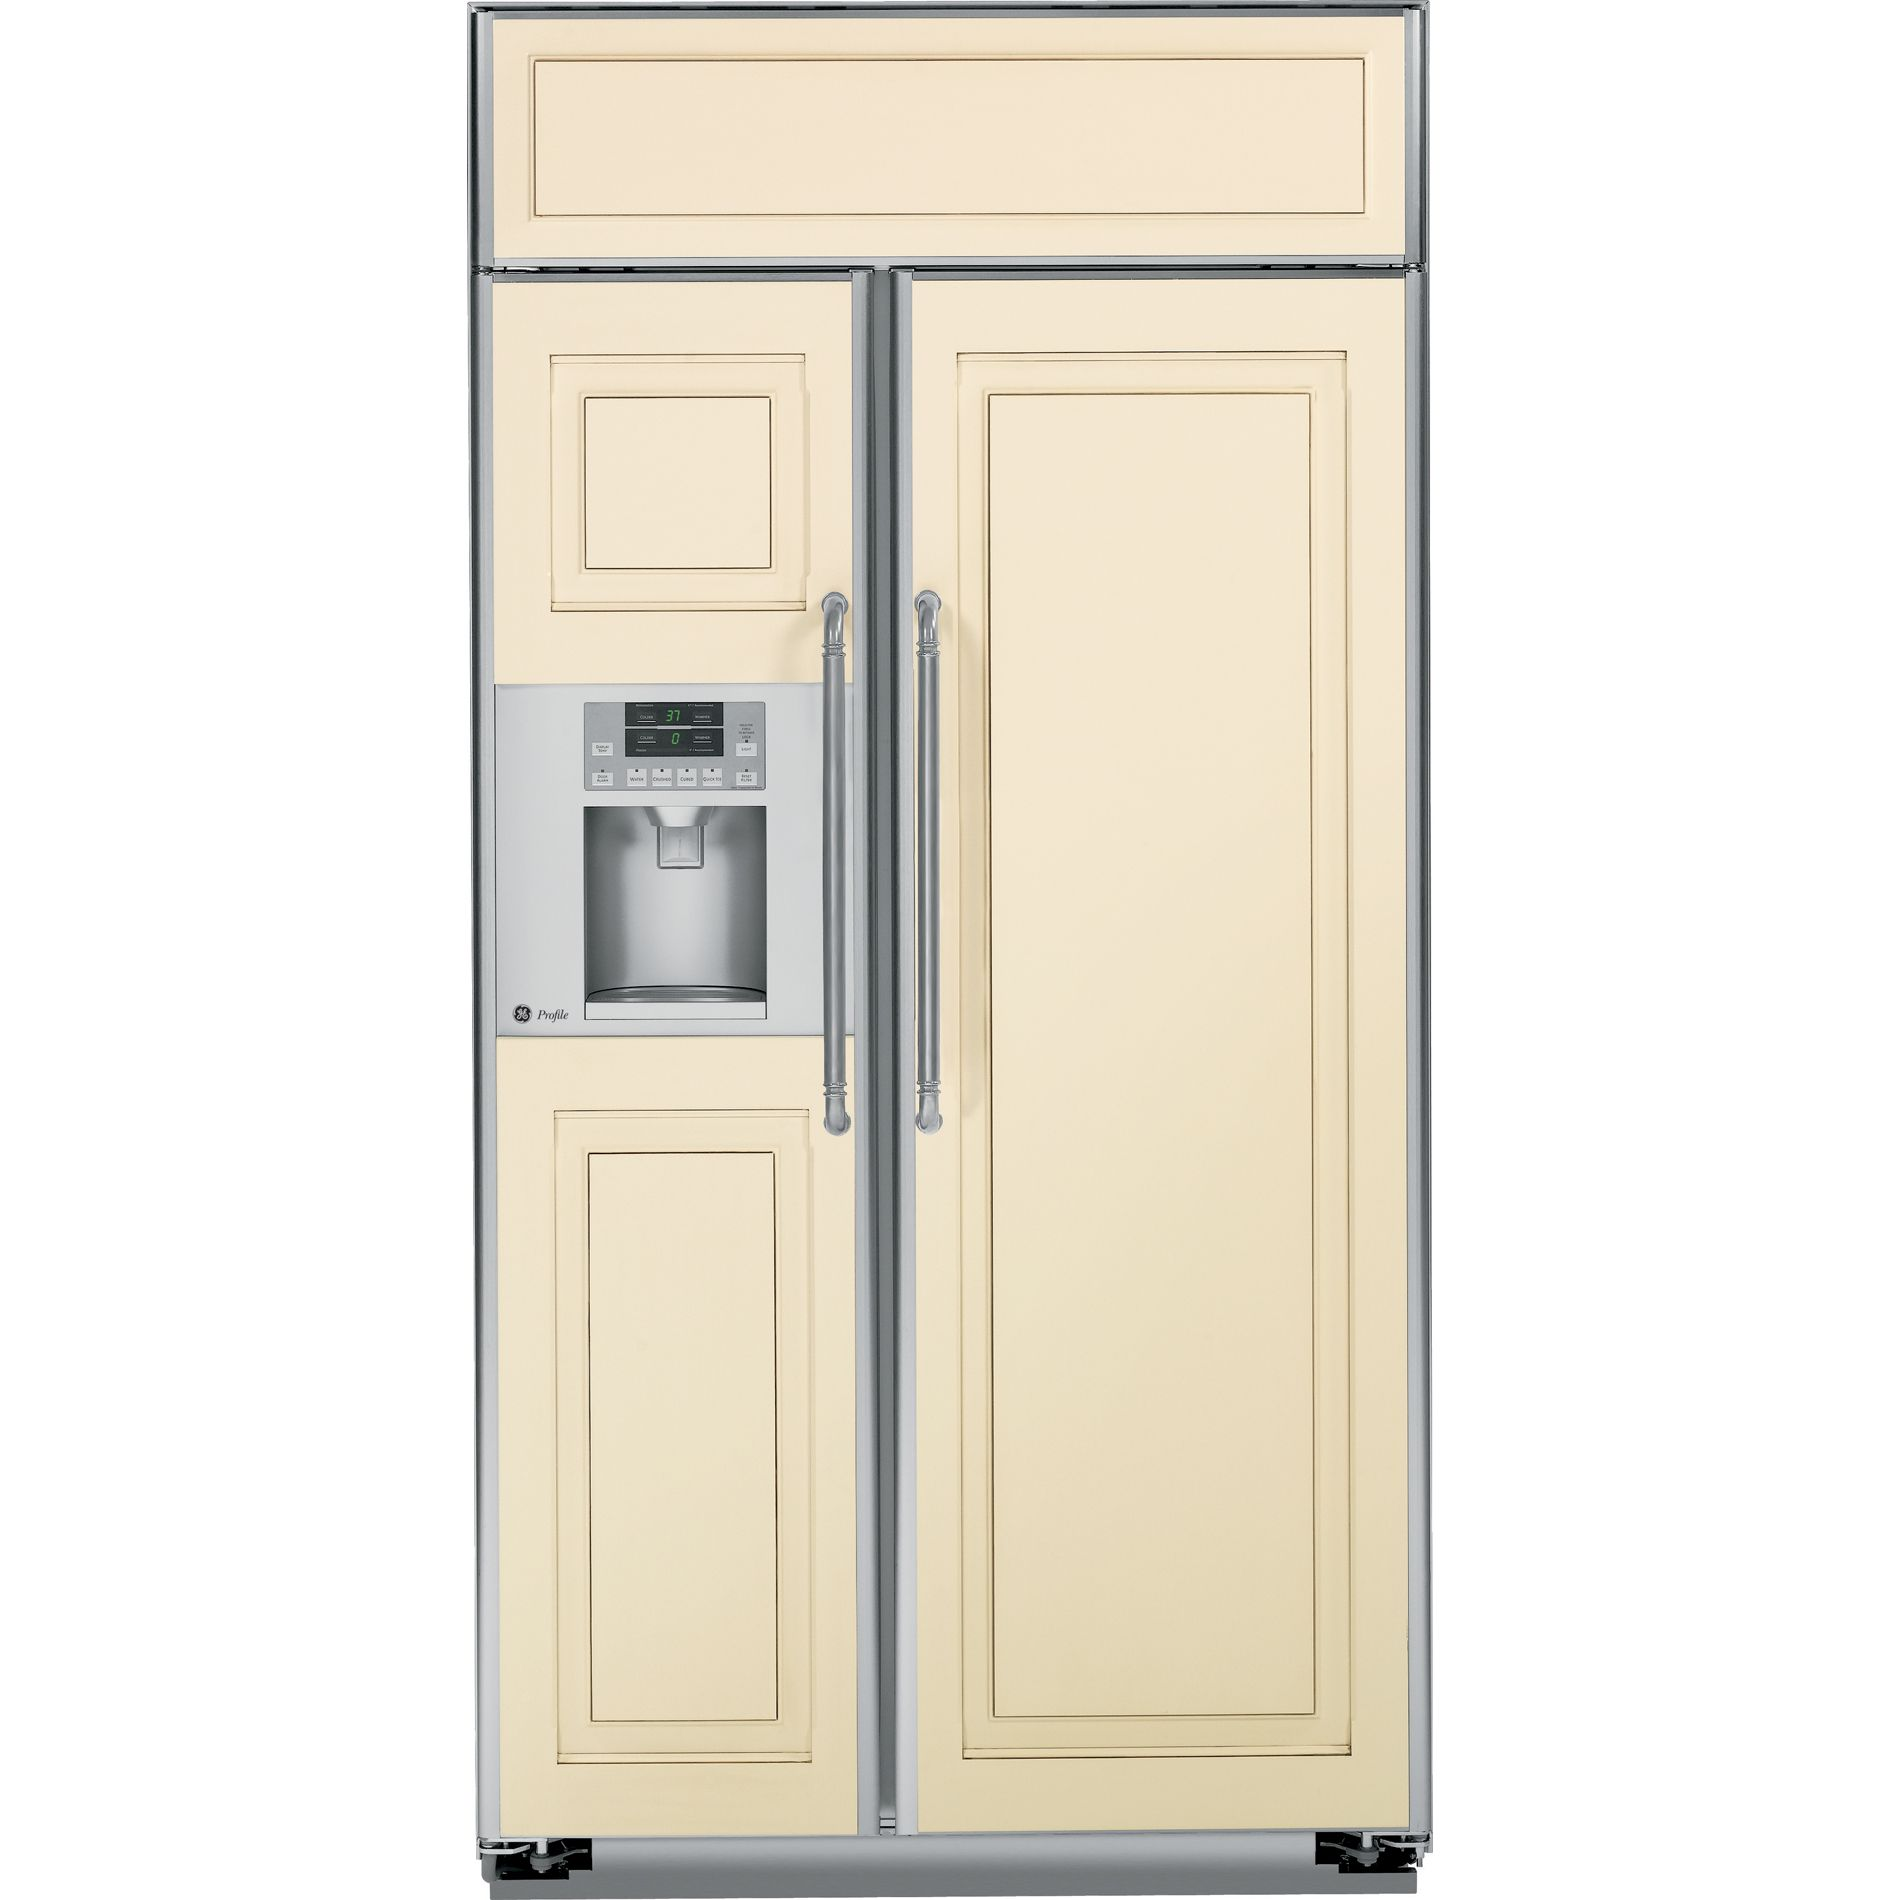 GE Profile™ Series 25.2 cu. ft. Built-In Side-by-Side Refrigerator - Panel Ready